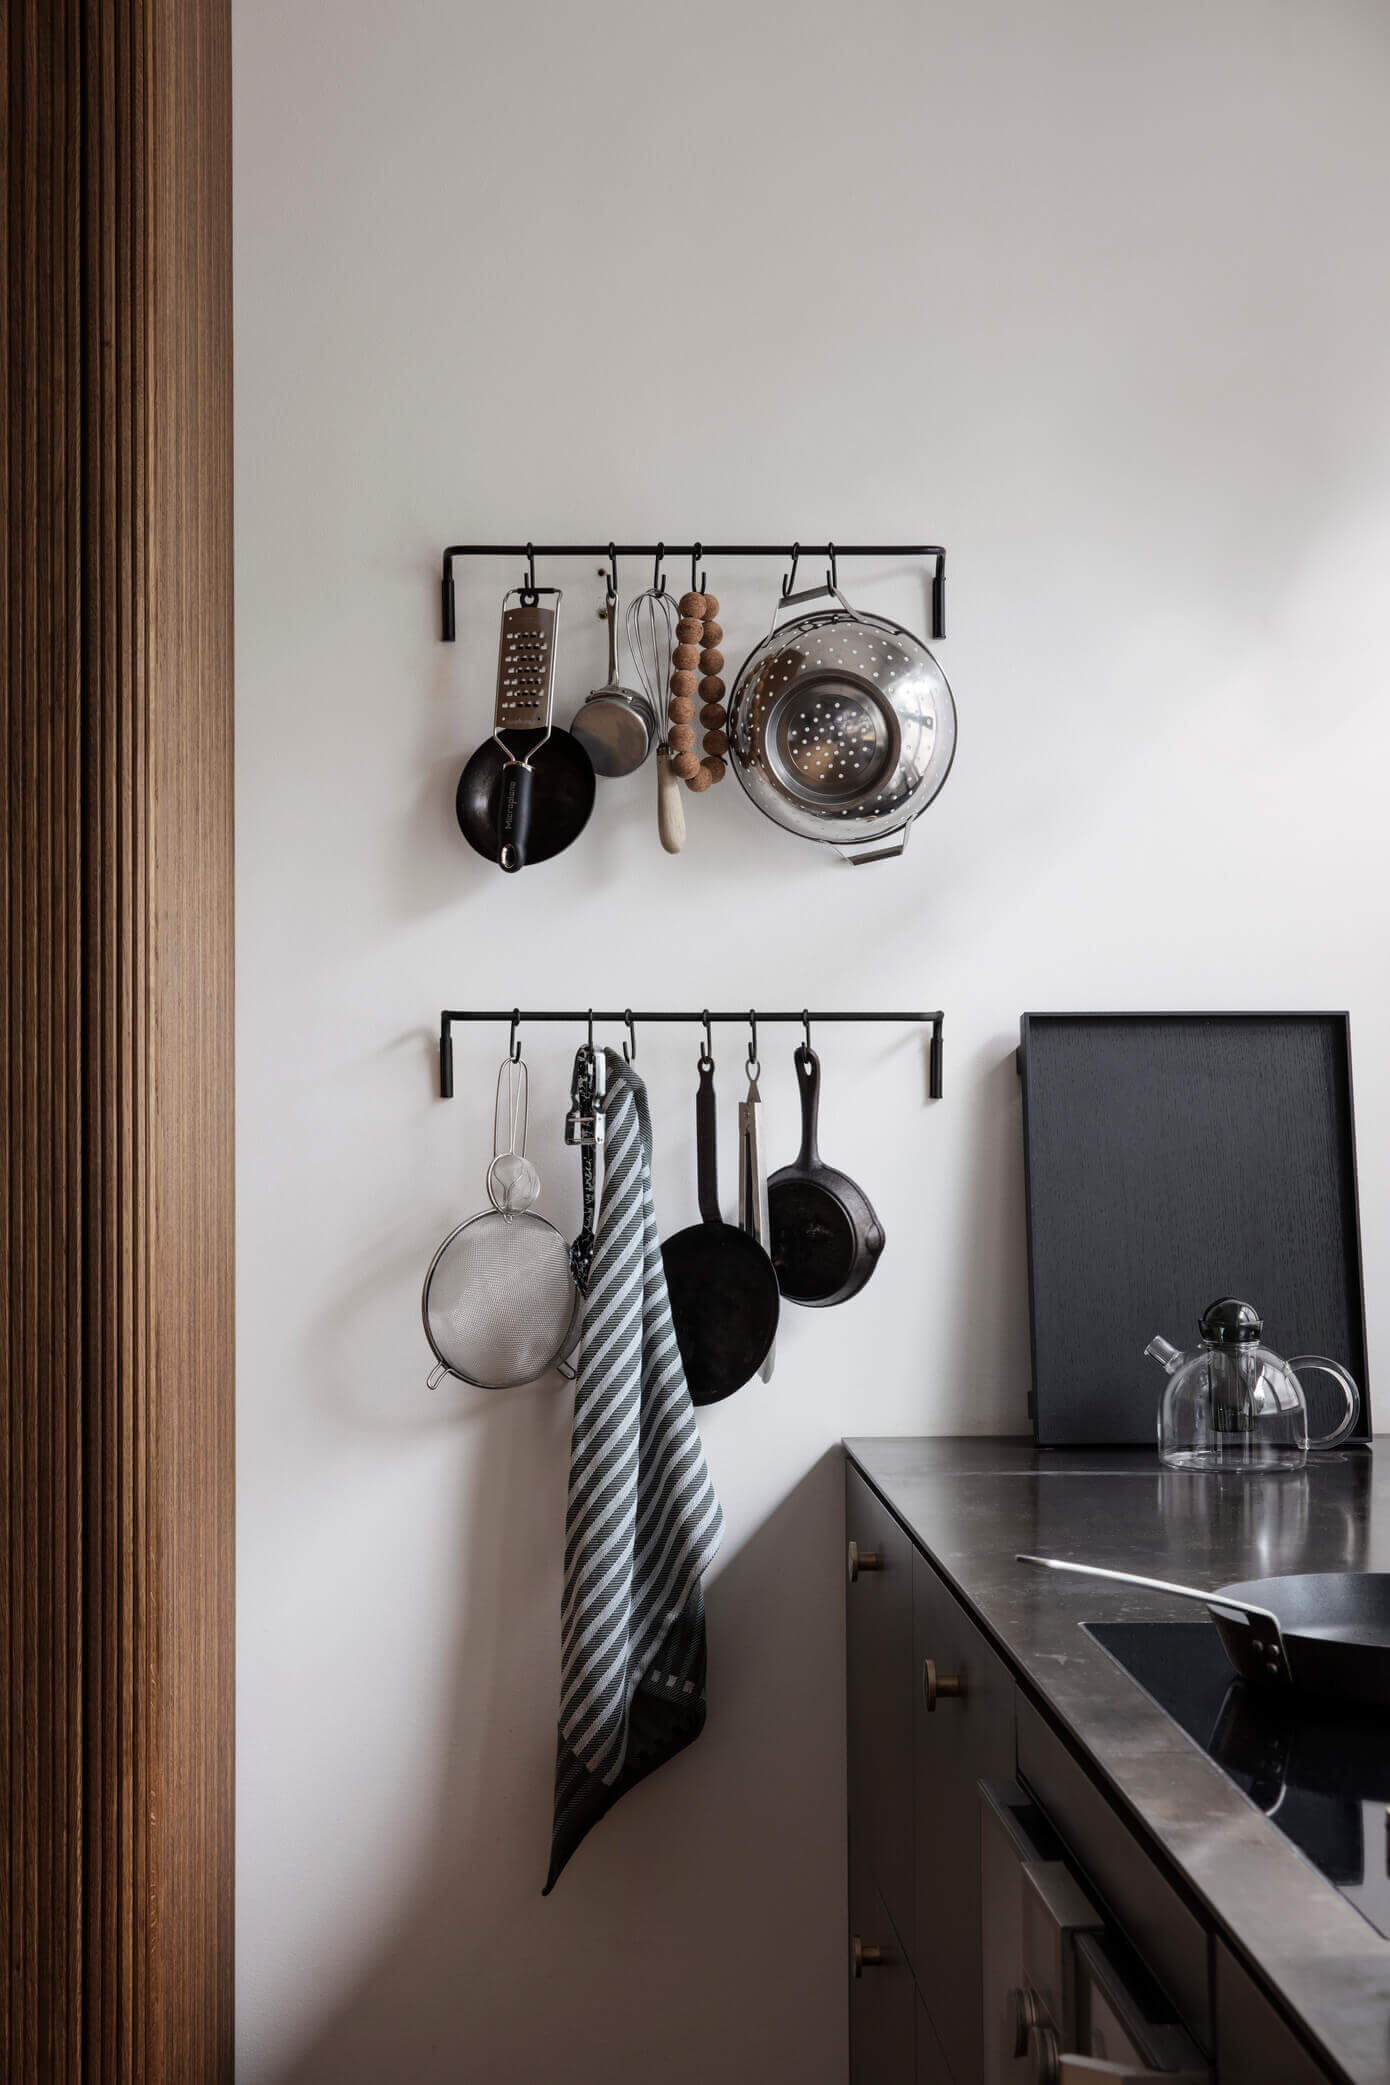 collectible pots and pans - how to display them minimally on the wall